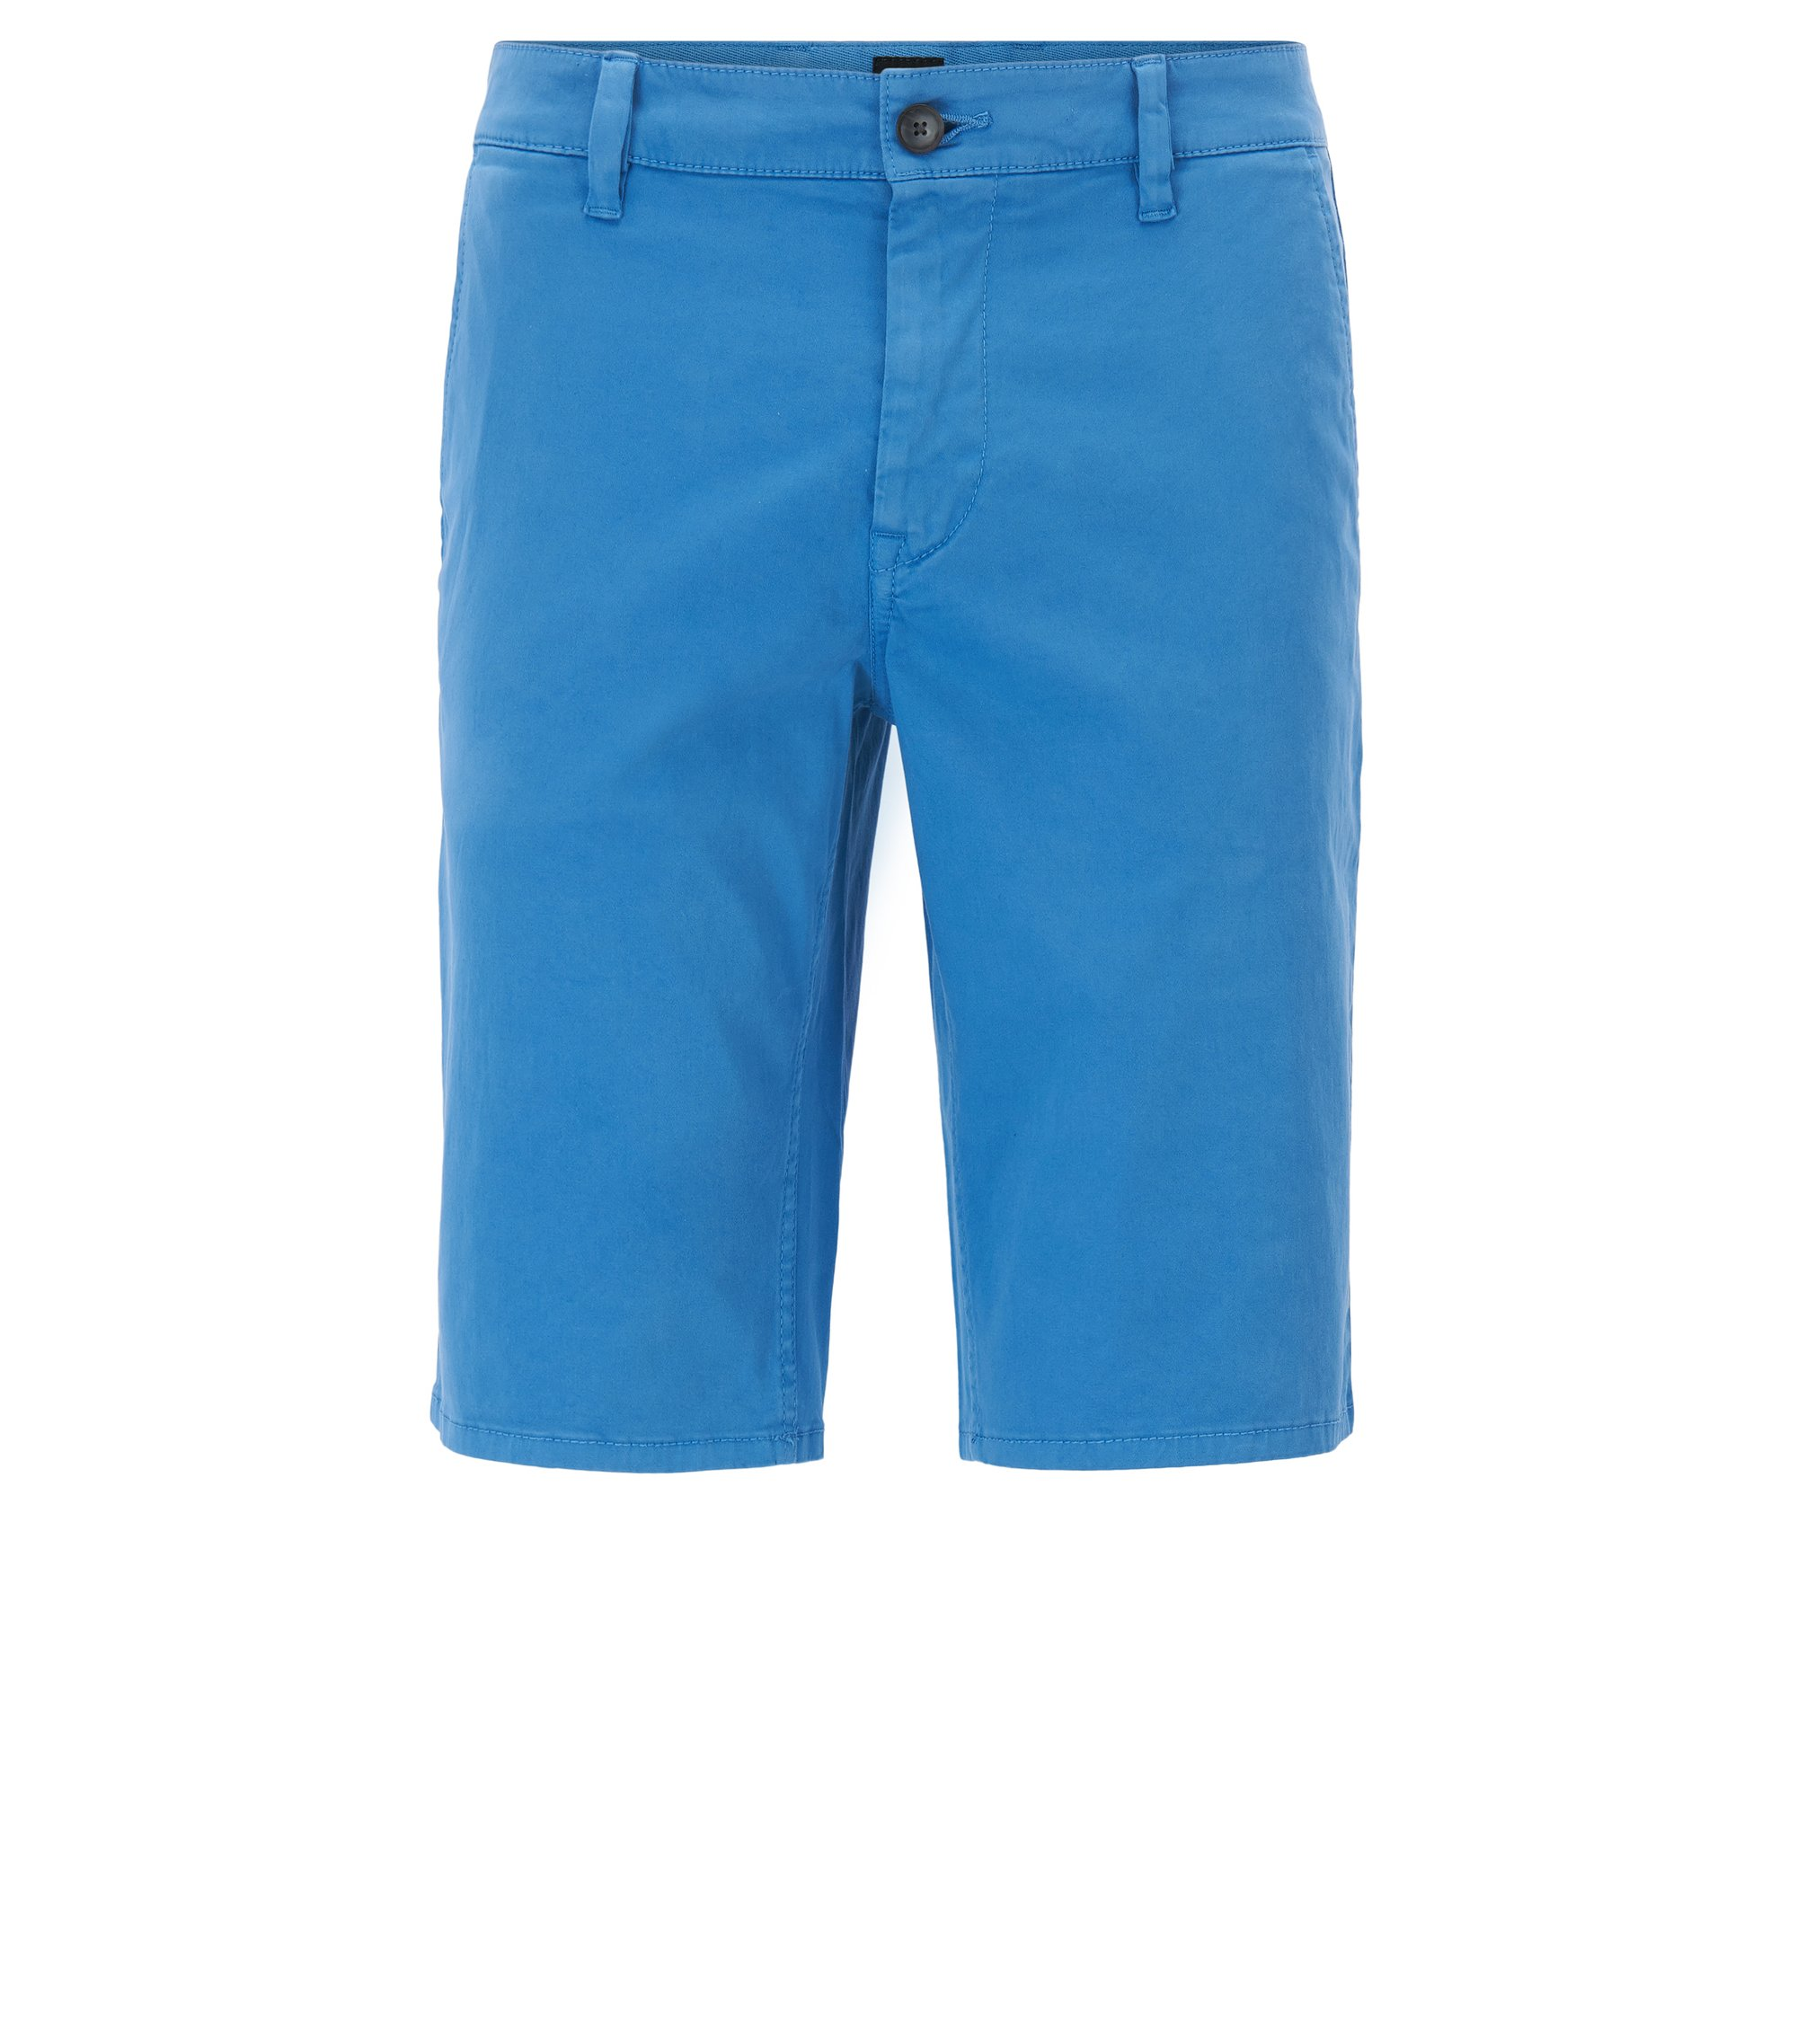 Stretch Cotton Chino Short, Slim Fit | Schino Slim Shorts D, Blue